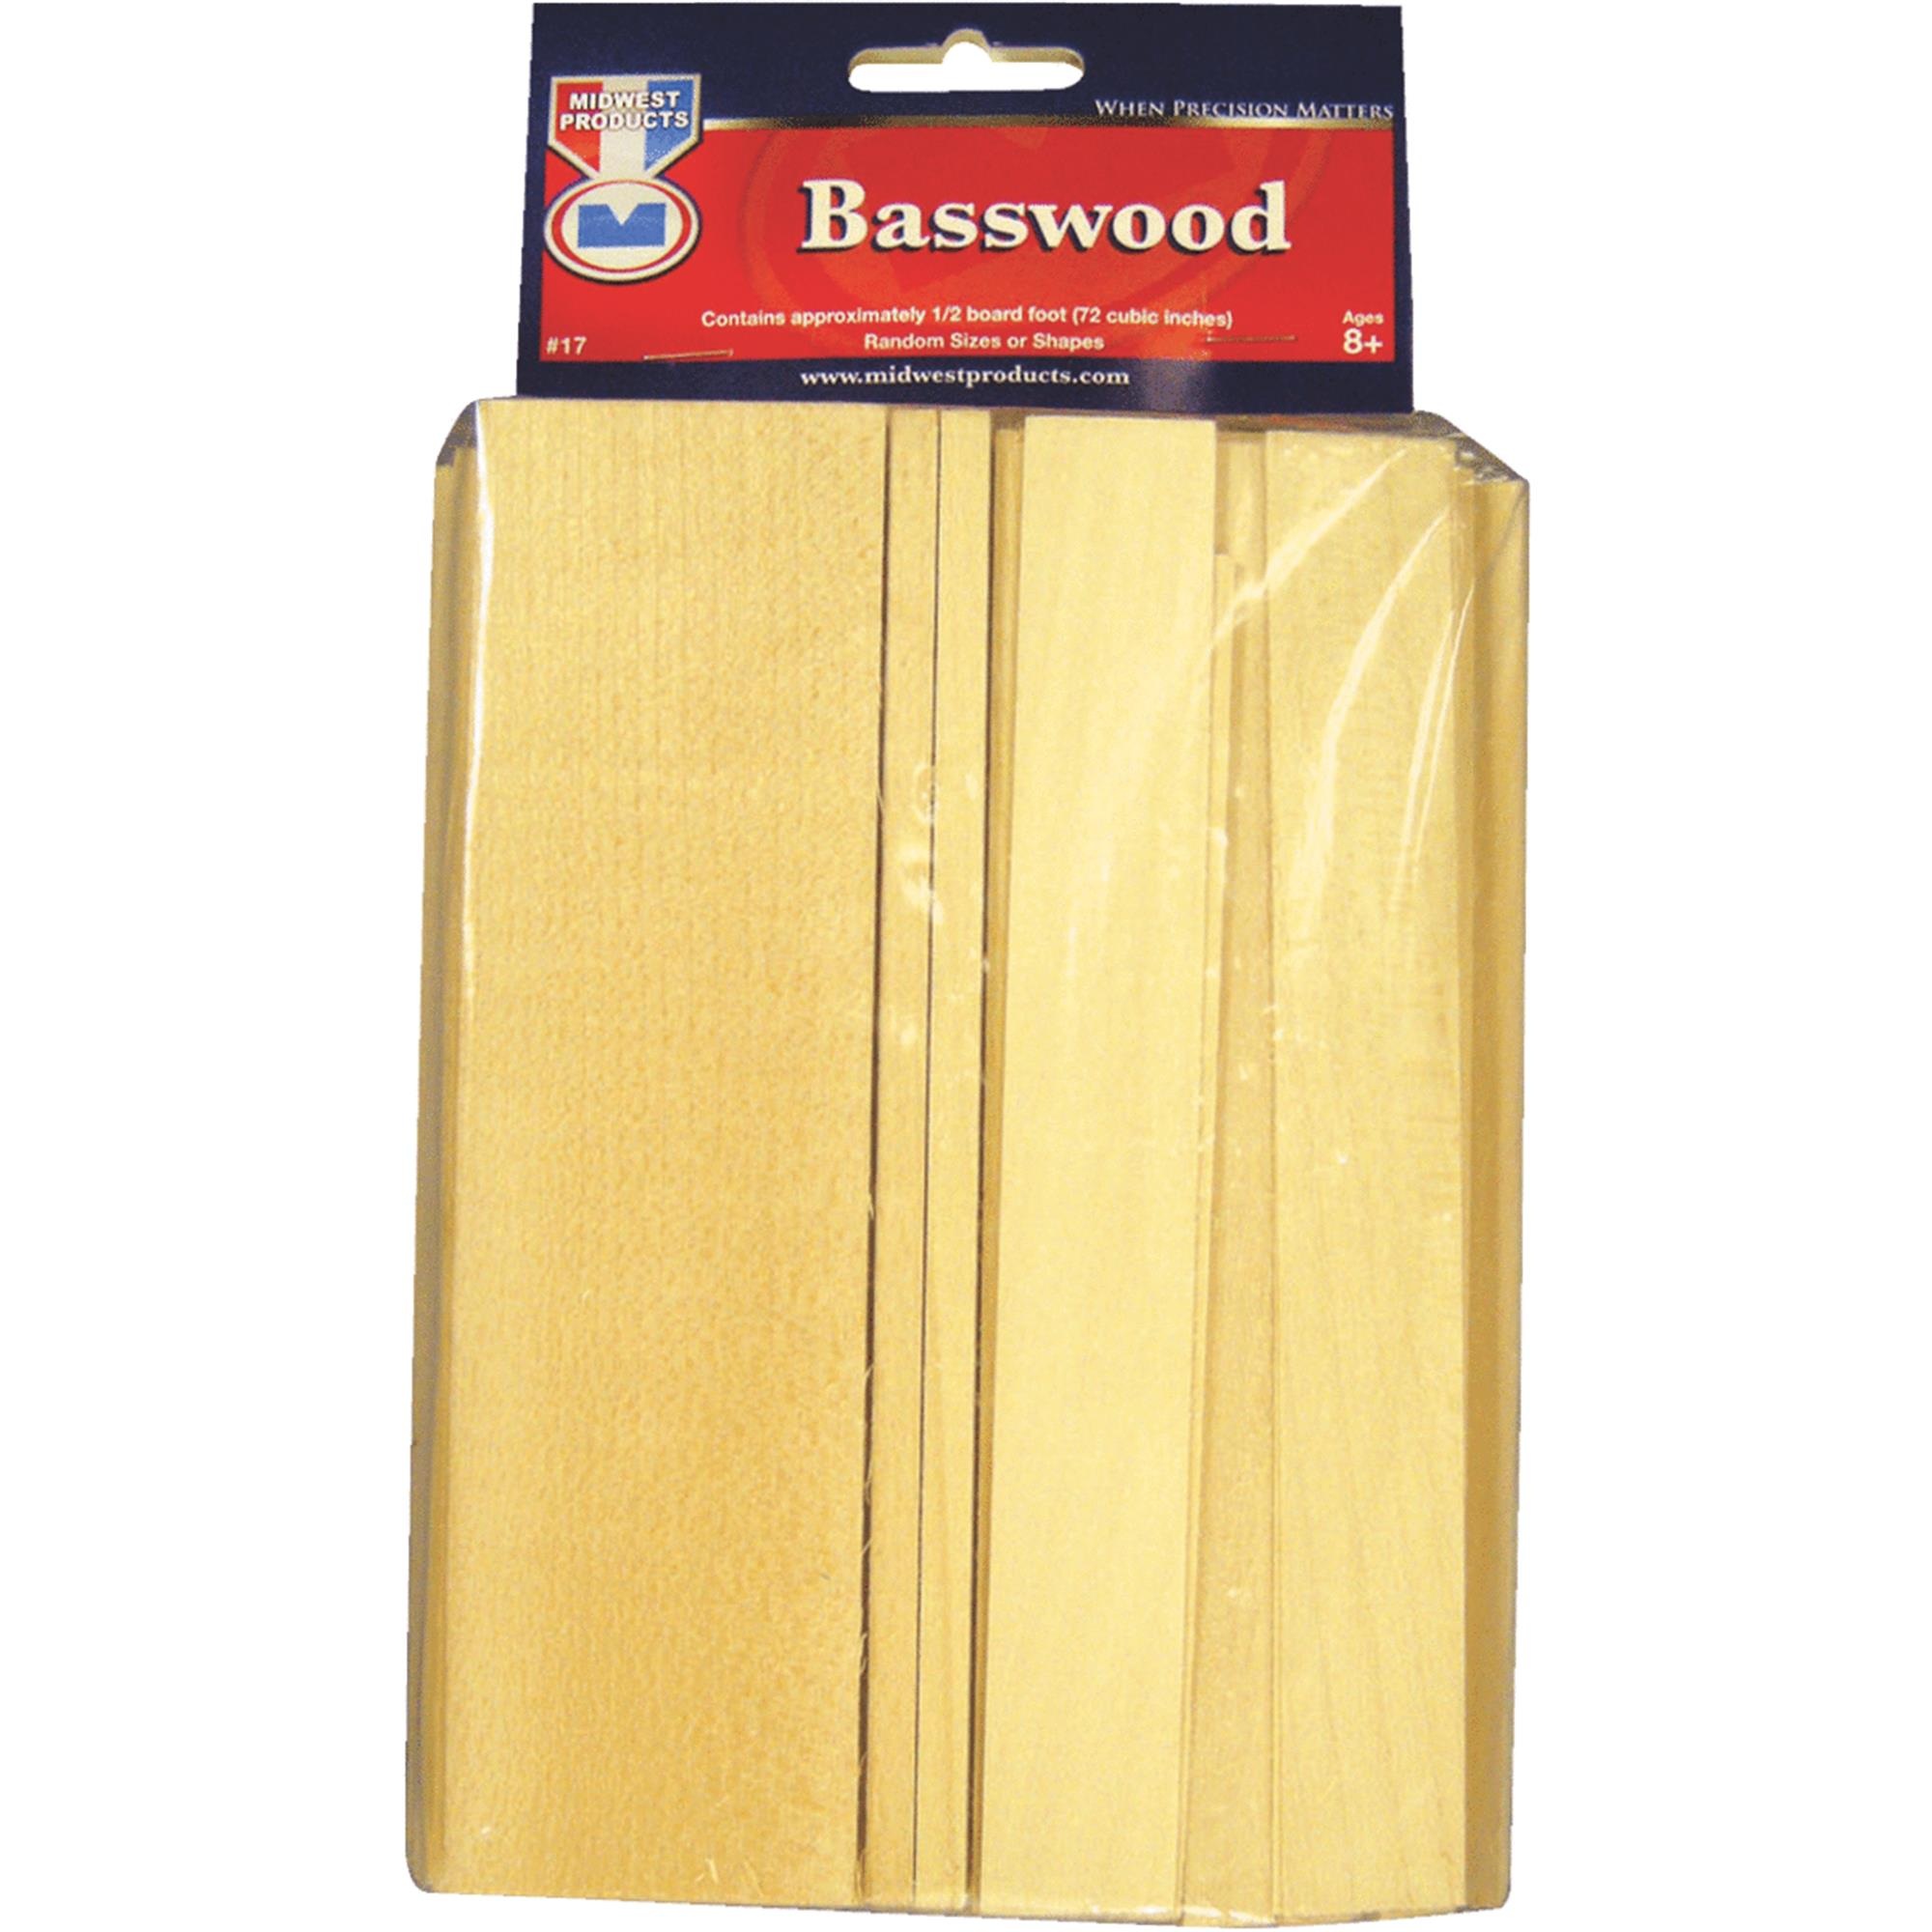 Wood Assortment Economy Bag, Basswood